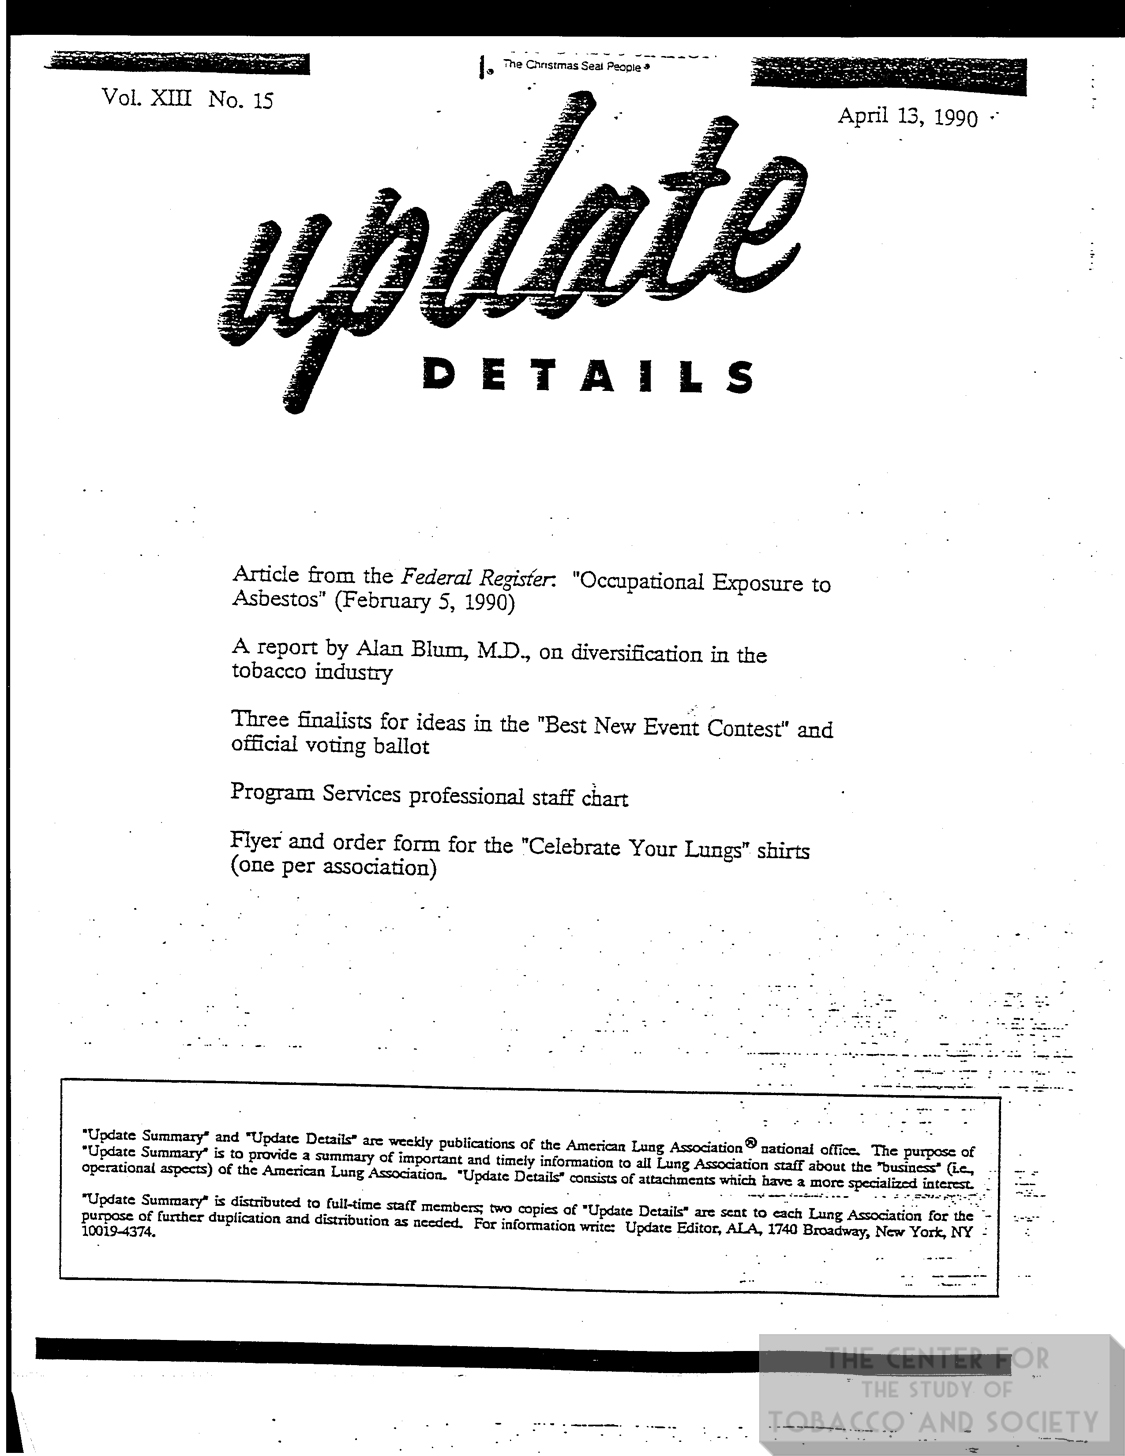 1990 04 13 ALA Update Details Report on Diversification in Tobacco Industry